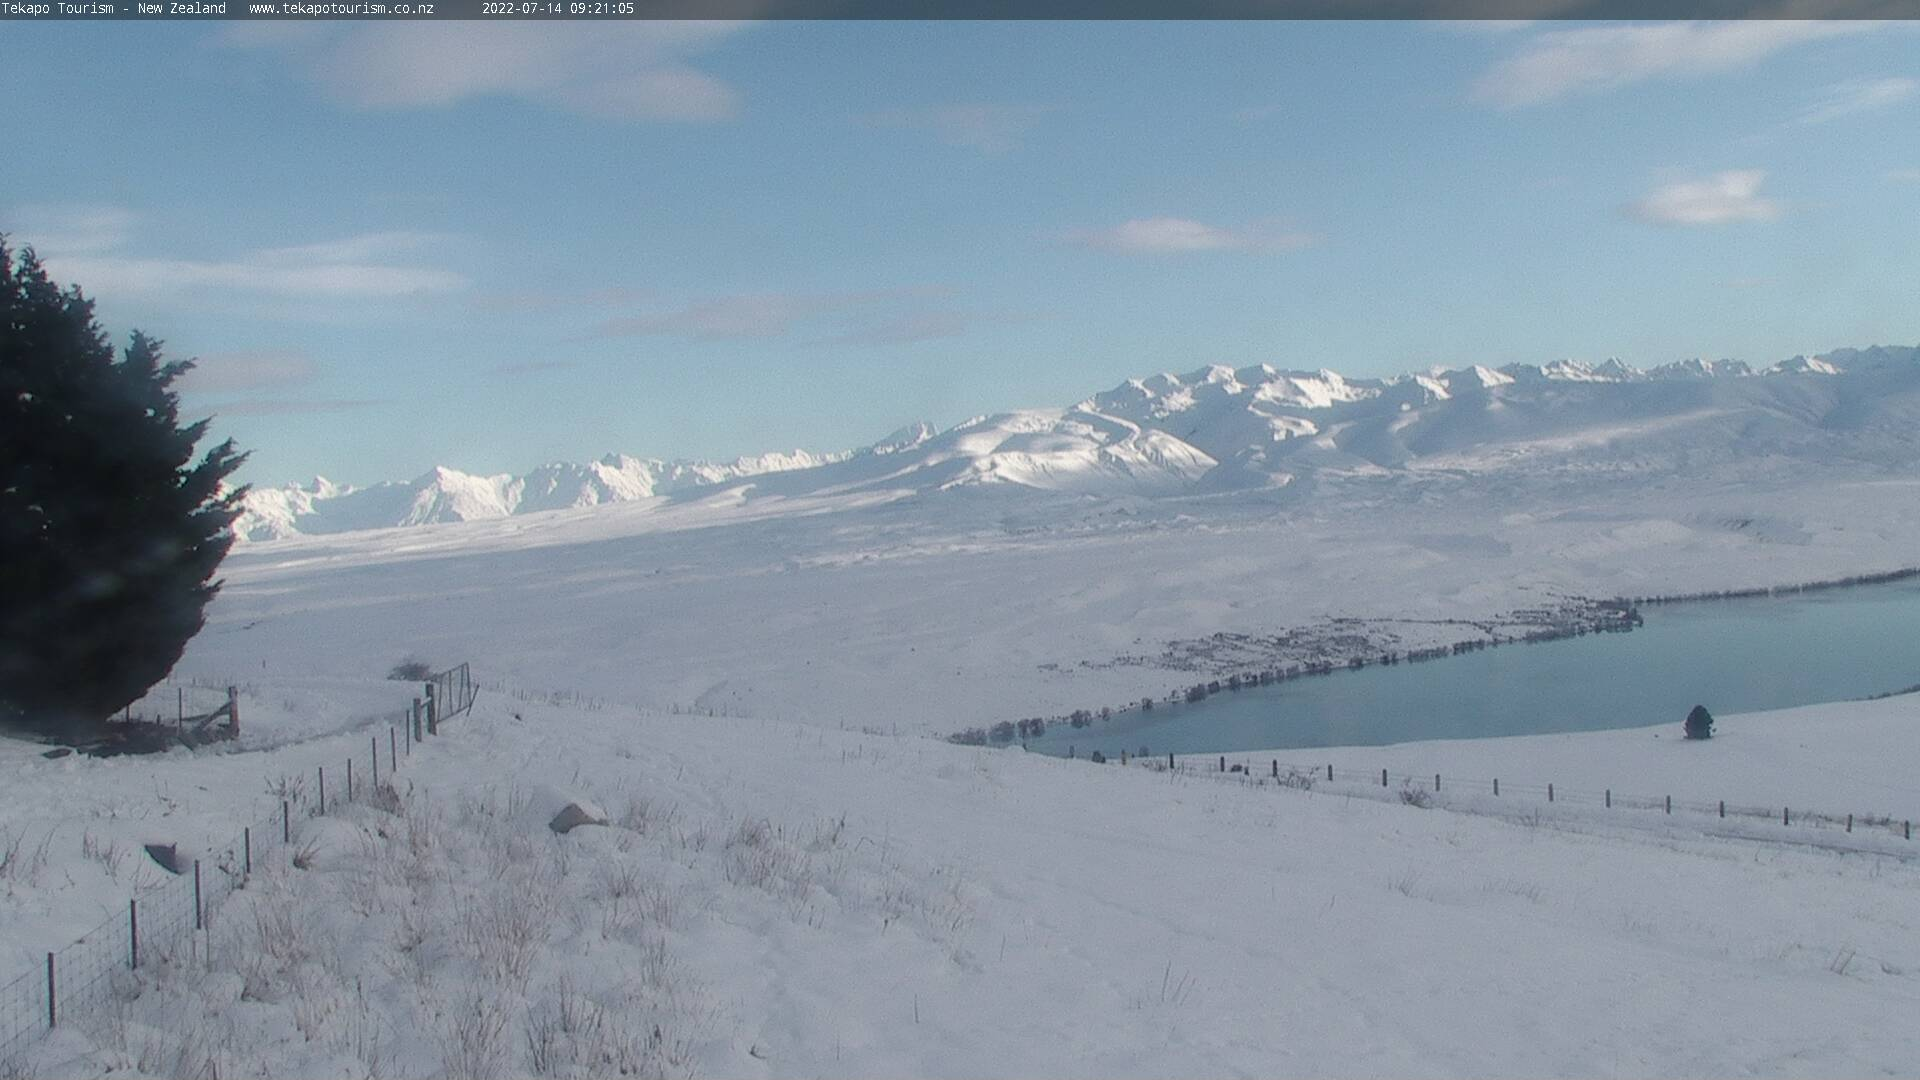 Tekapo Tourism webcam - West view